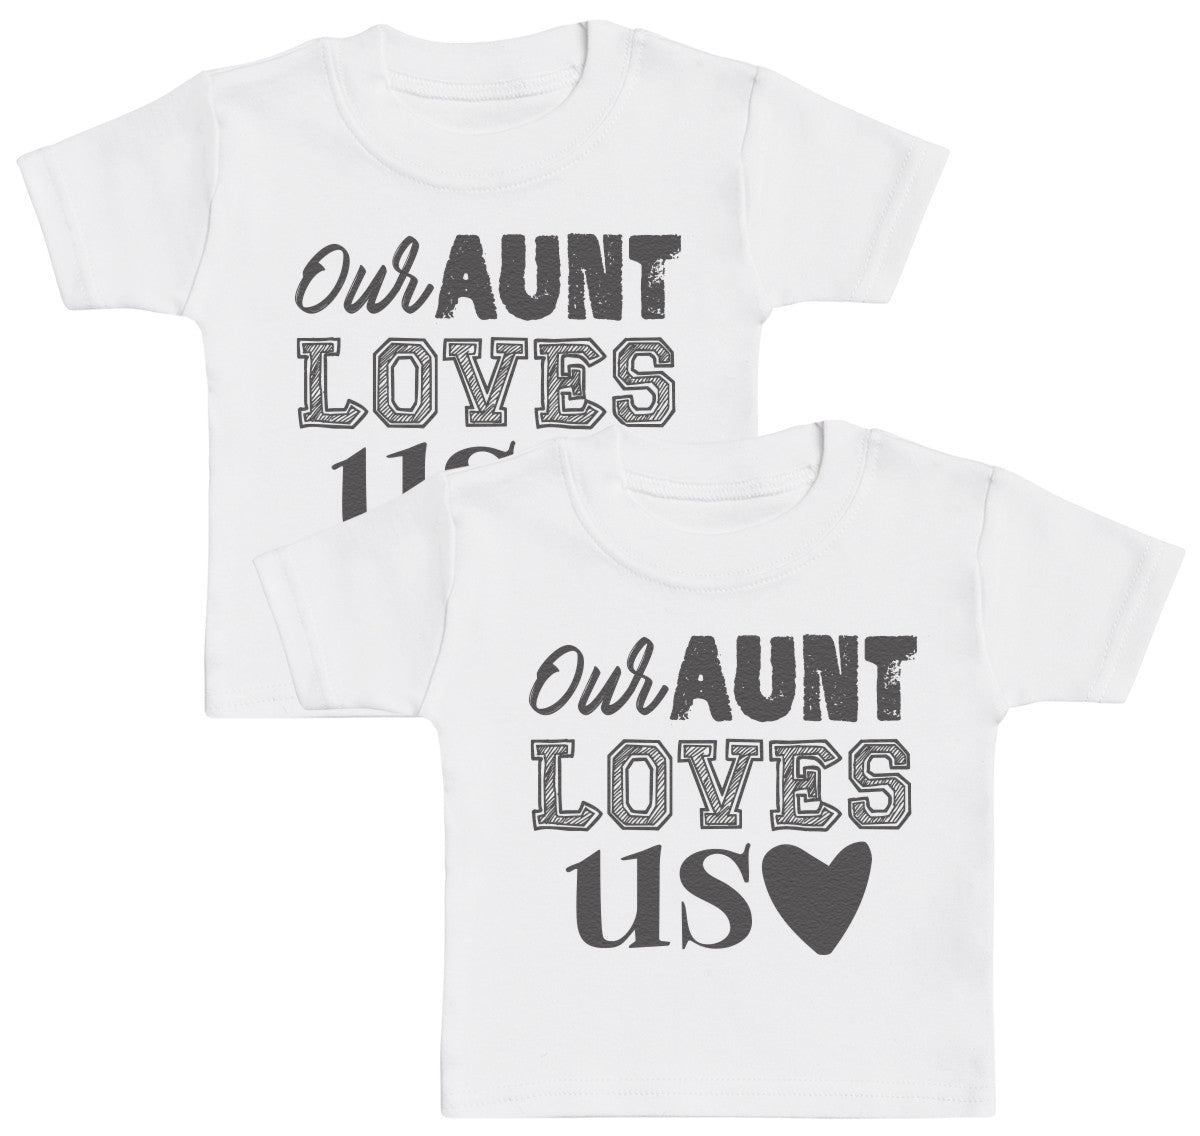 Our Aunt Loves Us Kids T - Shirt - Kids Top - Boys T - Shirt - Girls T - Shirt